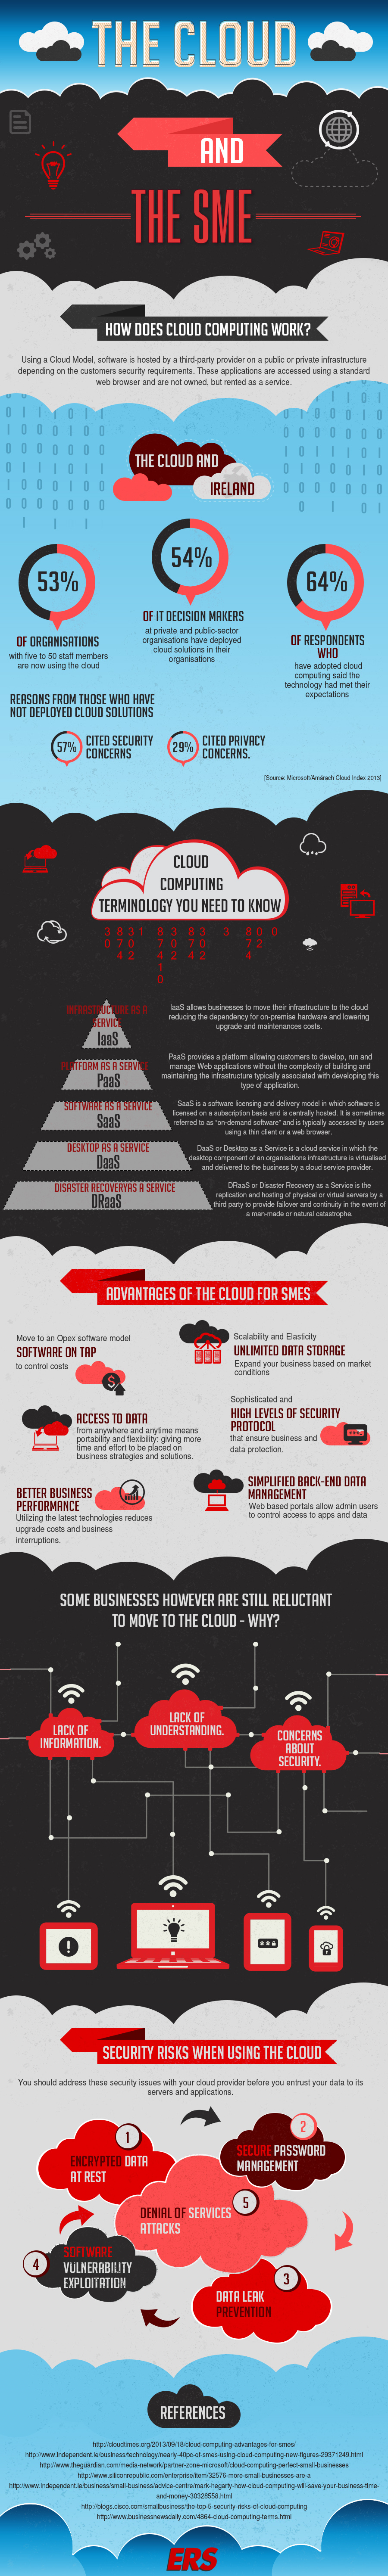 The-Cloud-and-The-SME-Infographic